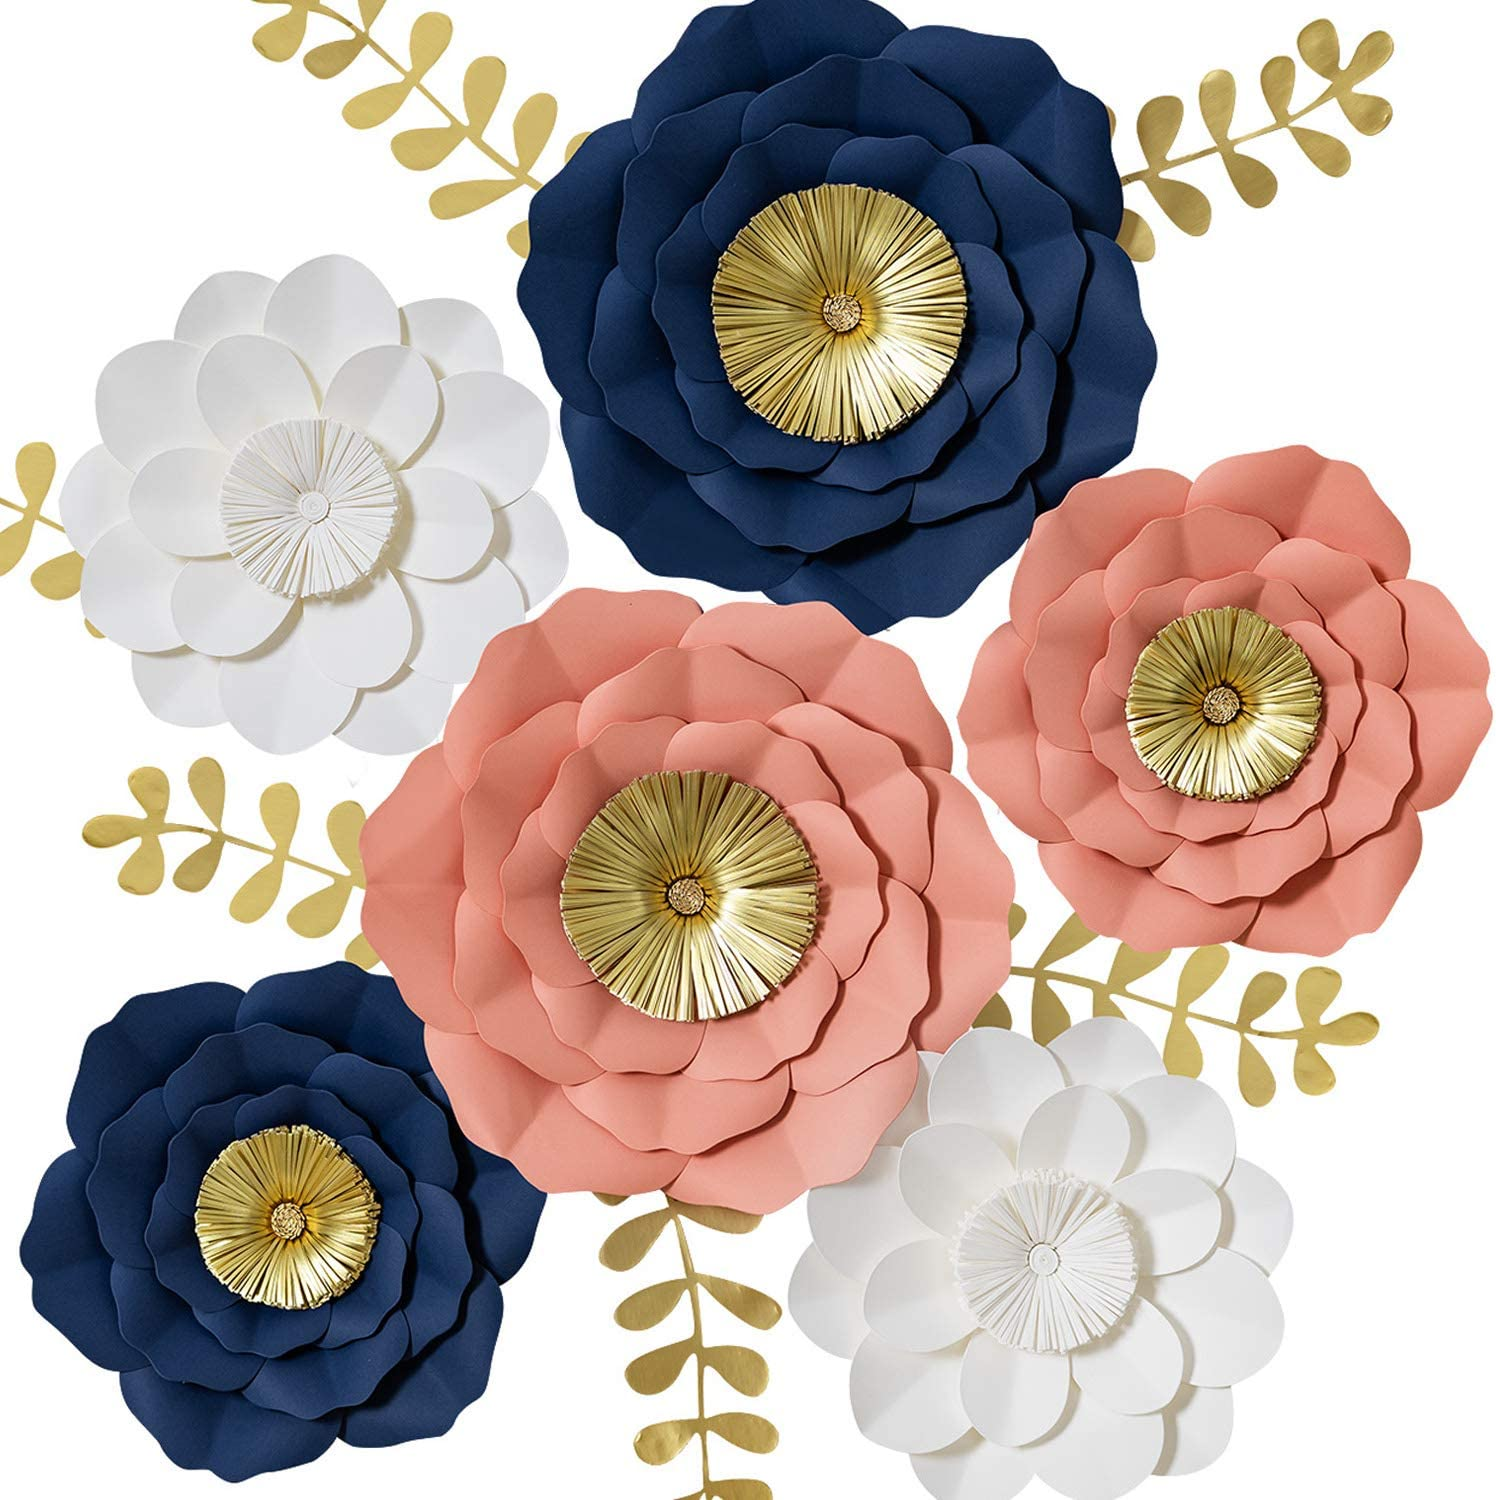 3D Paper Flowers Decorations, Giant Paper Flowers, Large Handcrafted Paper Blooms (Navy Blue, Coral, White, Set of 6) for Wedding Backdrop, Bridal Shower, Baby Shower, Nursery Wall Decor